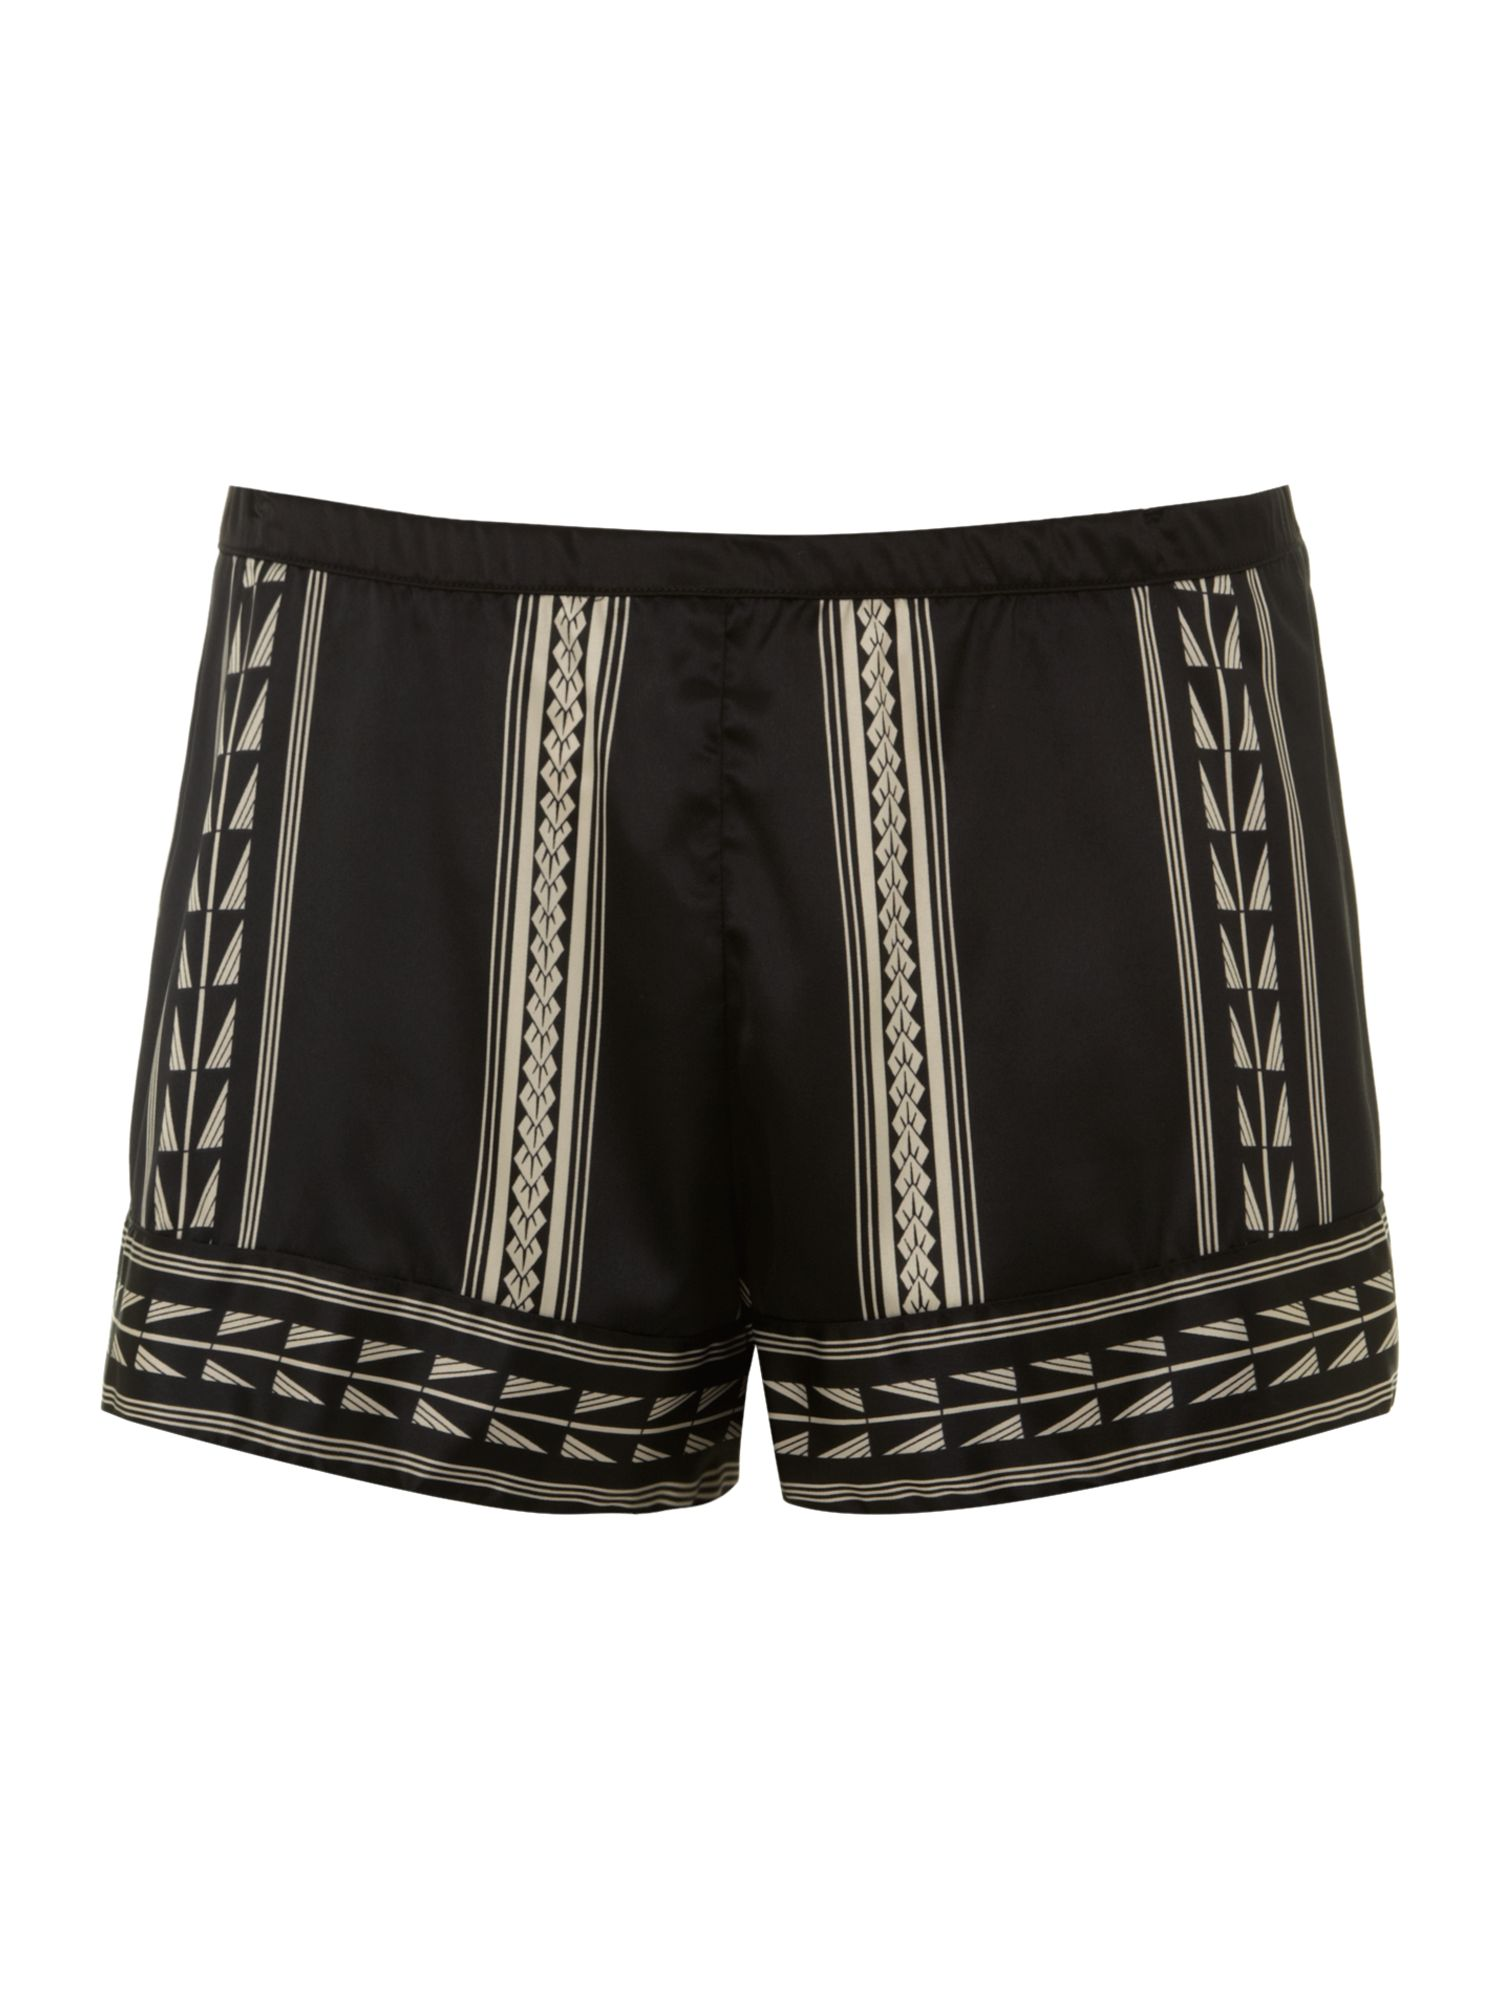 Island tattoo pj short